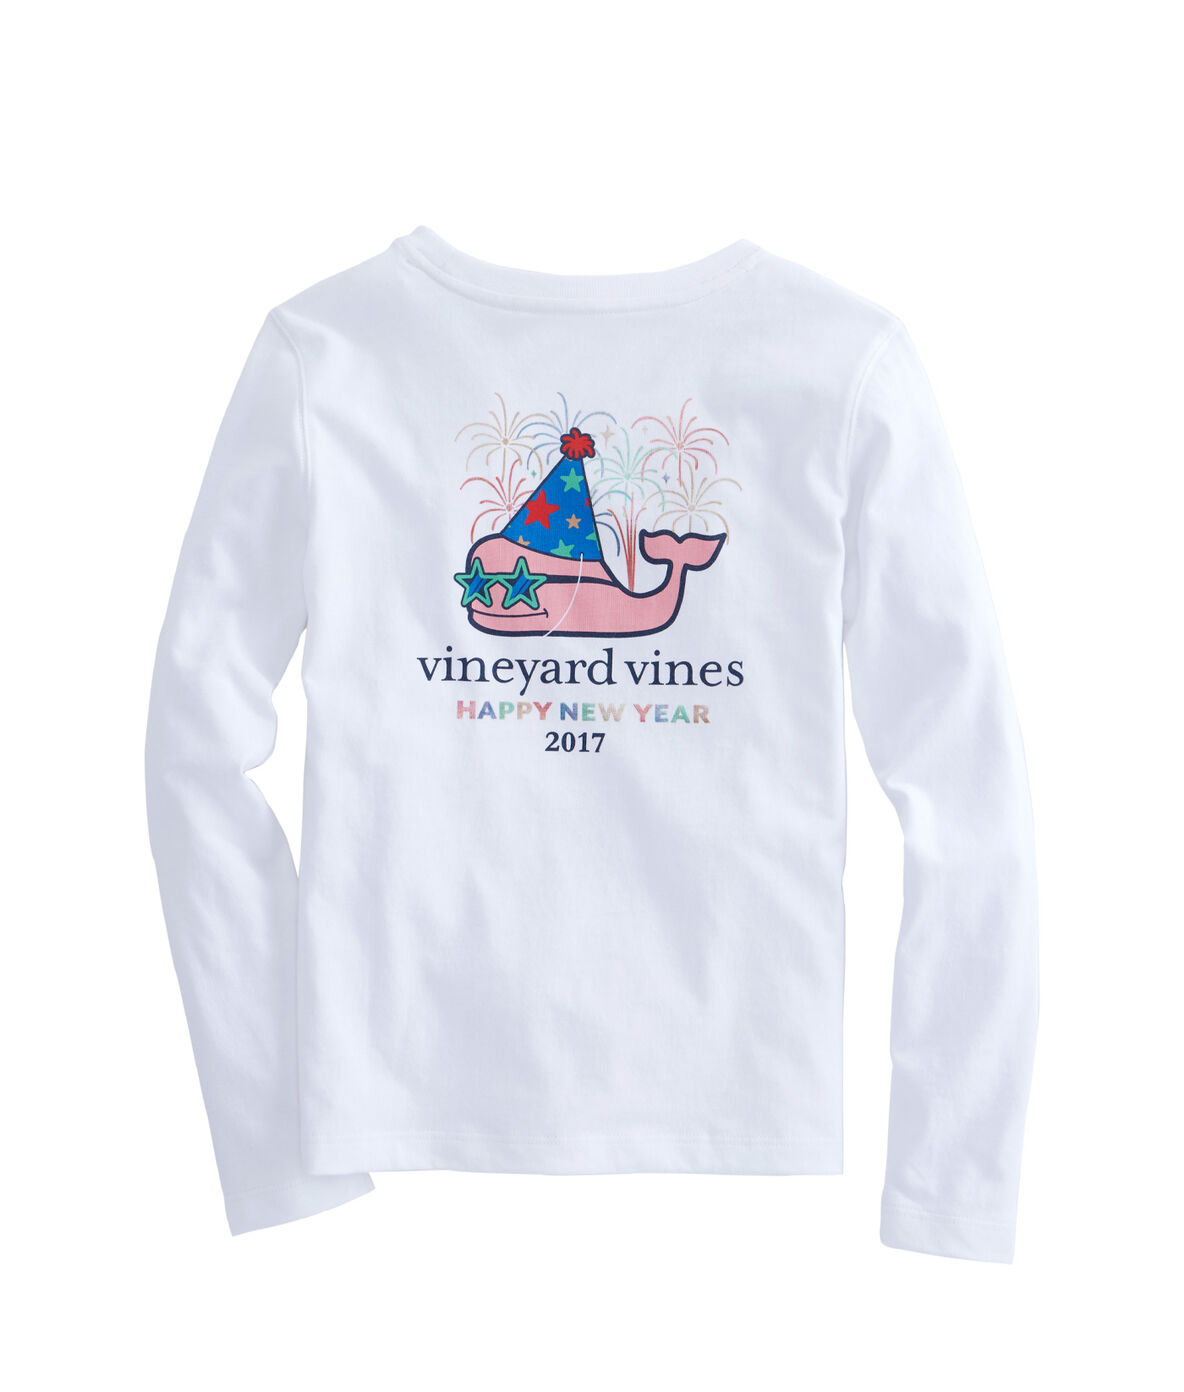 new vineyard girls Vineyard vines at up to 90% off retail thredup has a huge selection of like-new girls' clothing find everything vineyard vines from girl dresses to skirts at thredup.